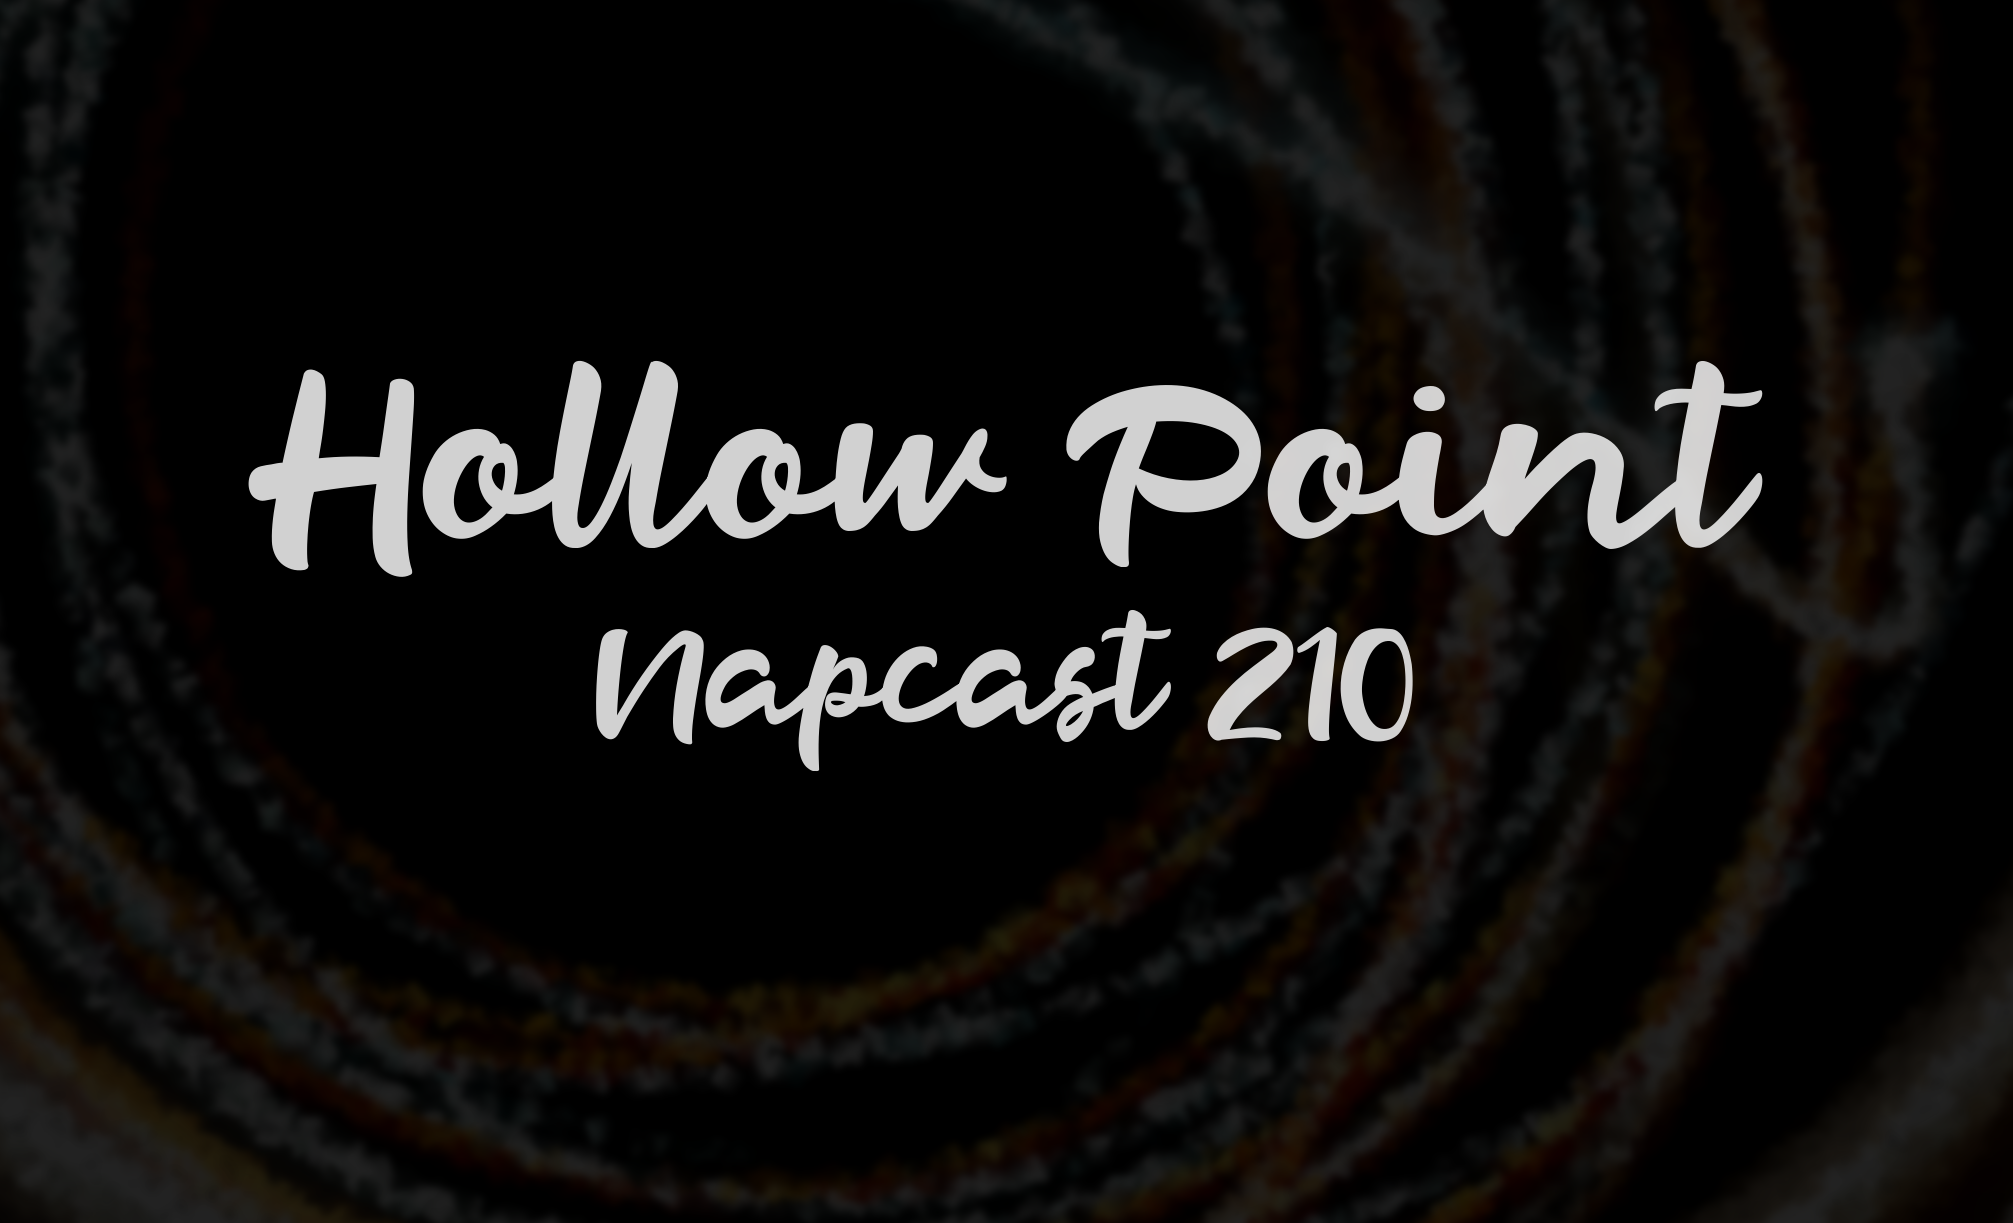 [Mix] NAP DNB presents NAPCast 210 - Hollow Point